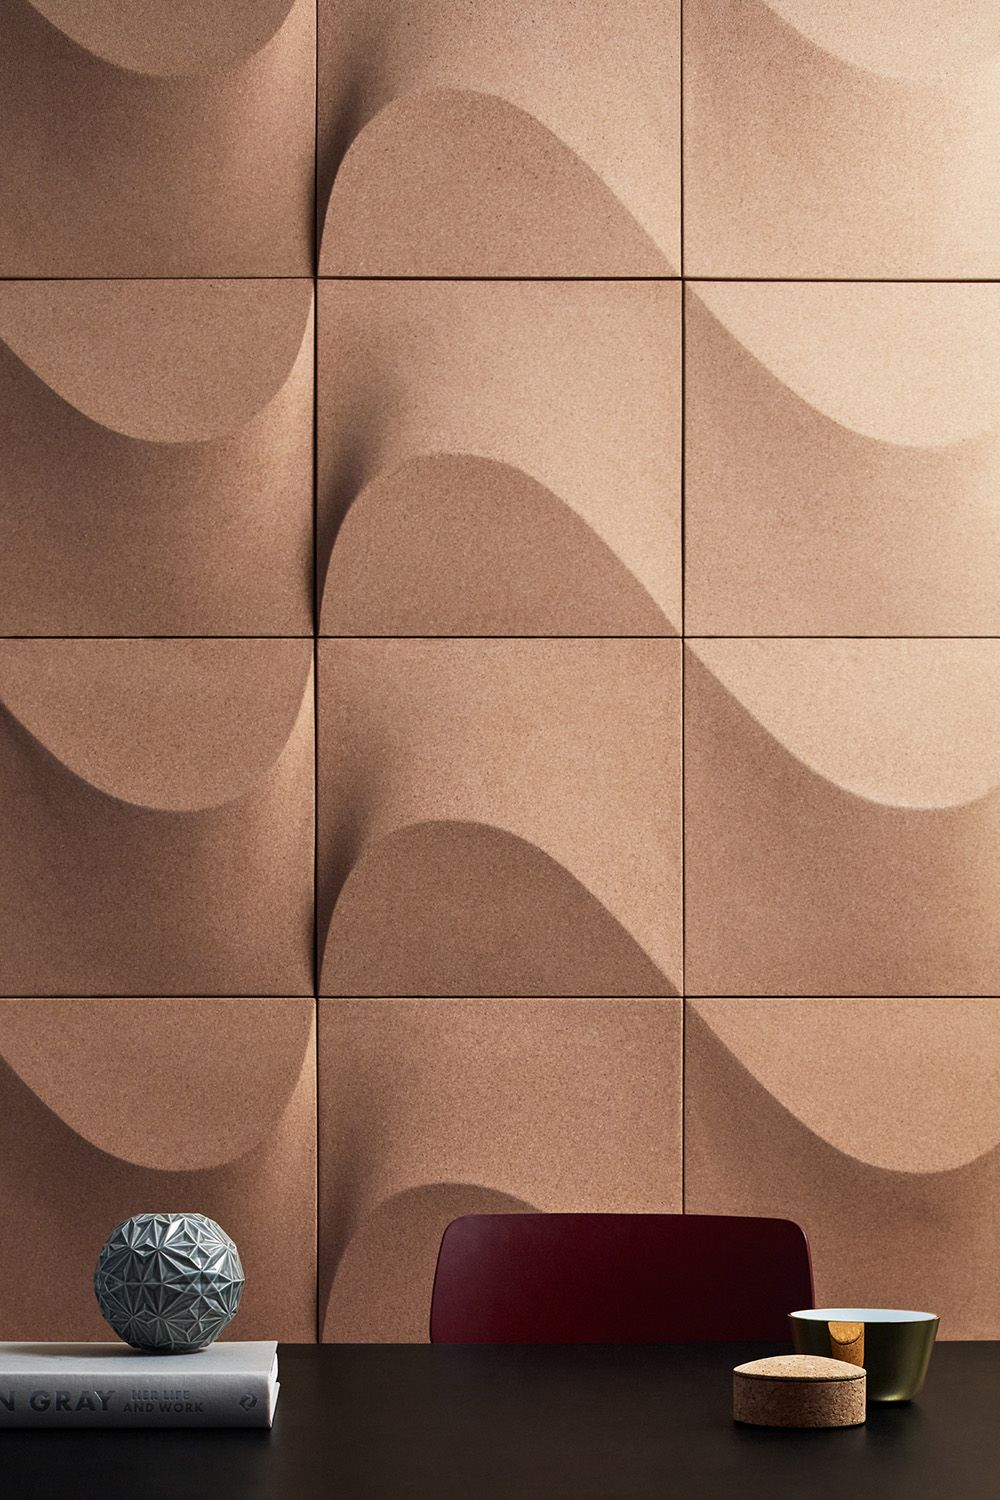 Internationally Acclaimed Designer Creates A Wall Panel Made Of Cork For Abstracta Scandinaviandesign Com Acoustic Wall Panels Wall Design Wall Paneling